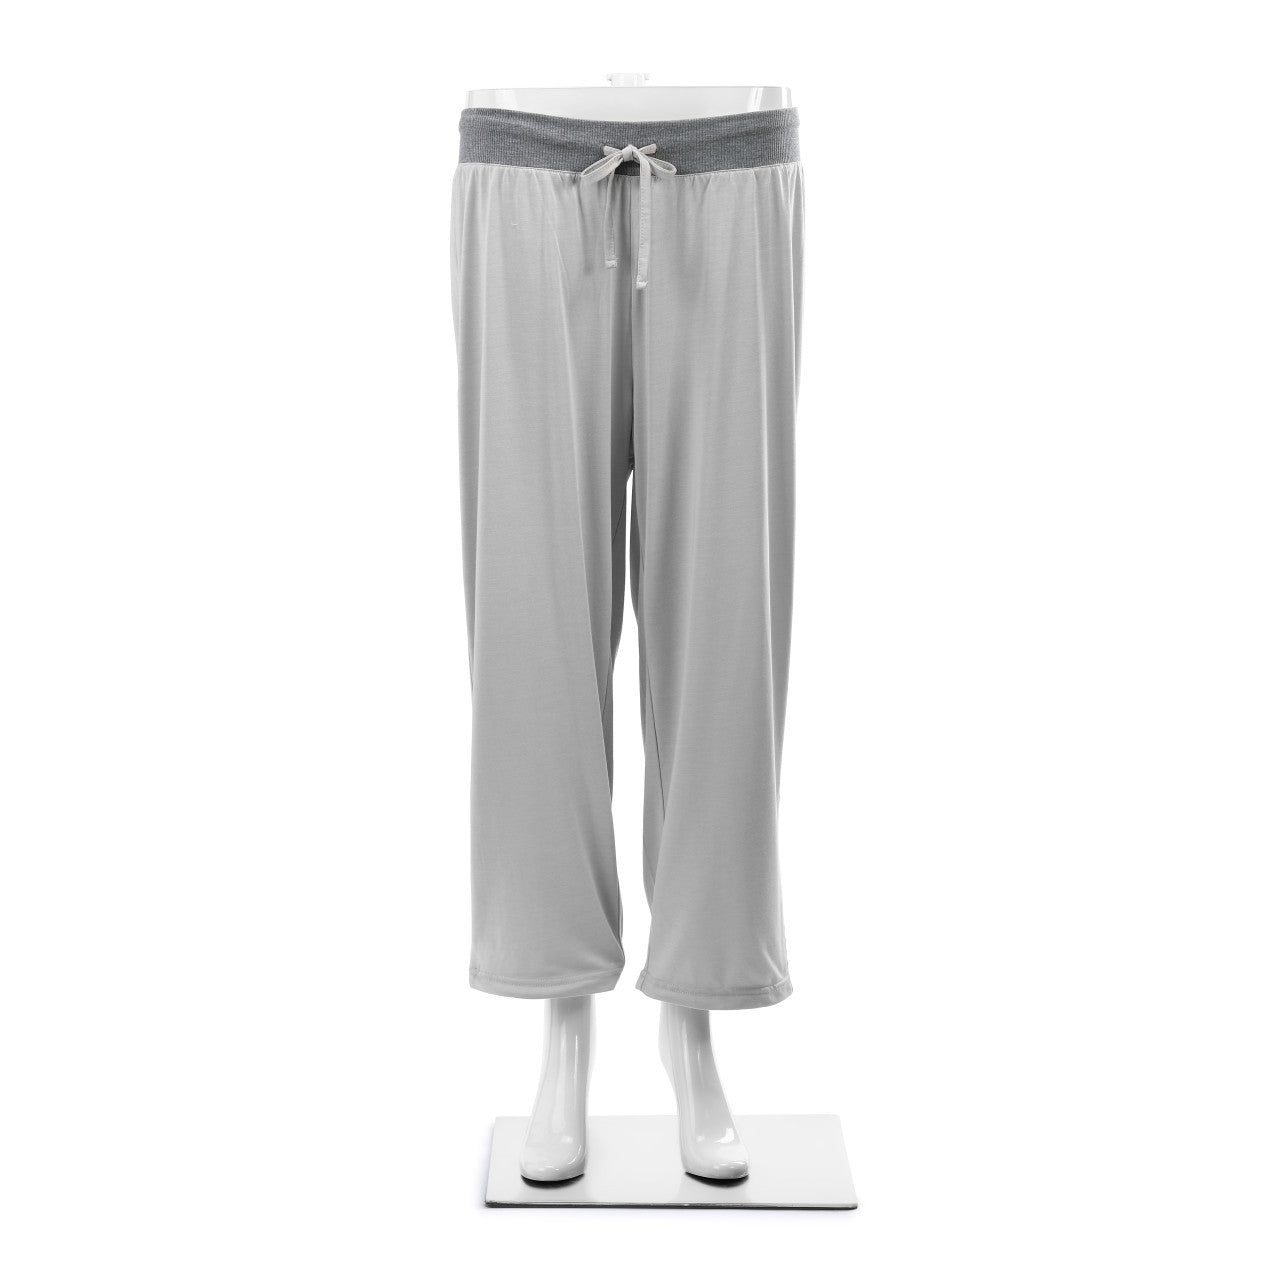 Bamboo Capri Pants in Gray!!!